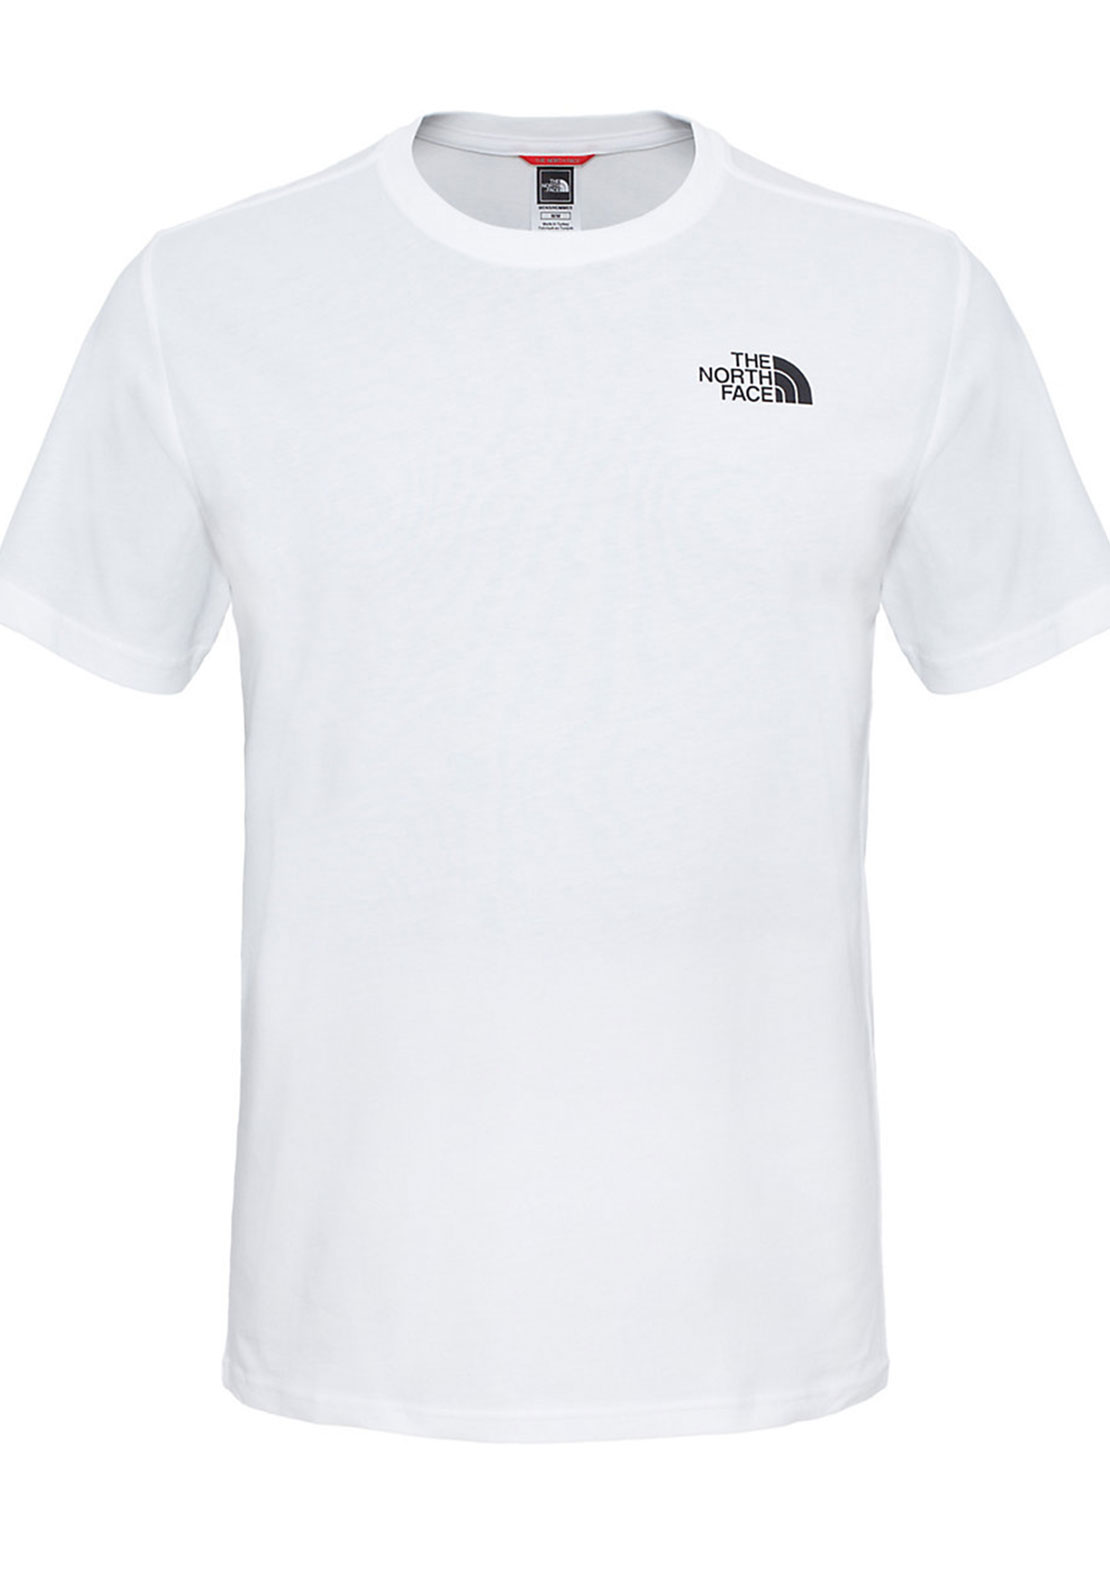 The North Face Mens Mens Simple Dome Tee, White